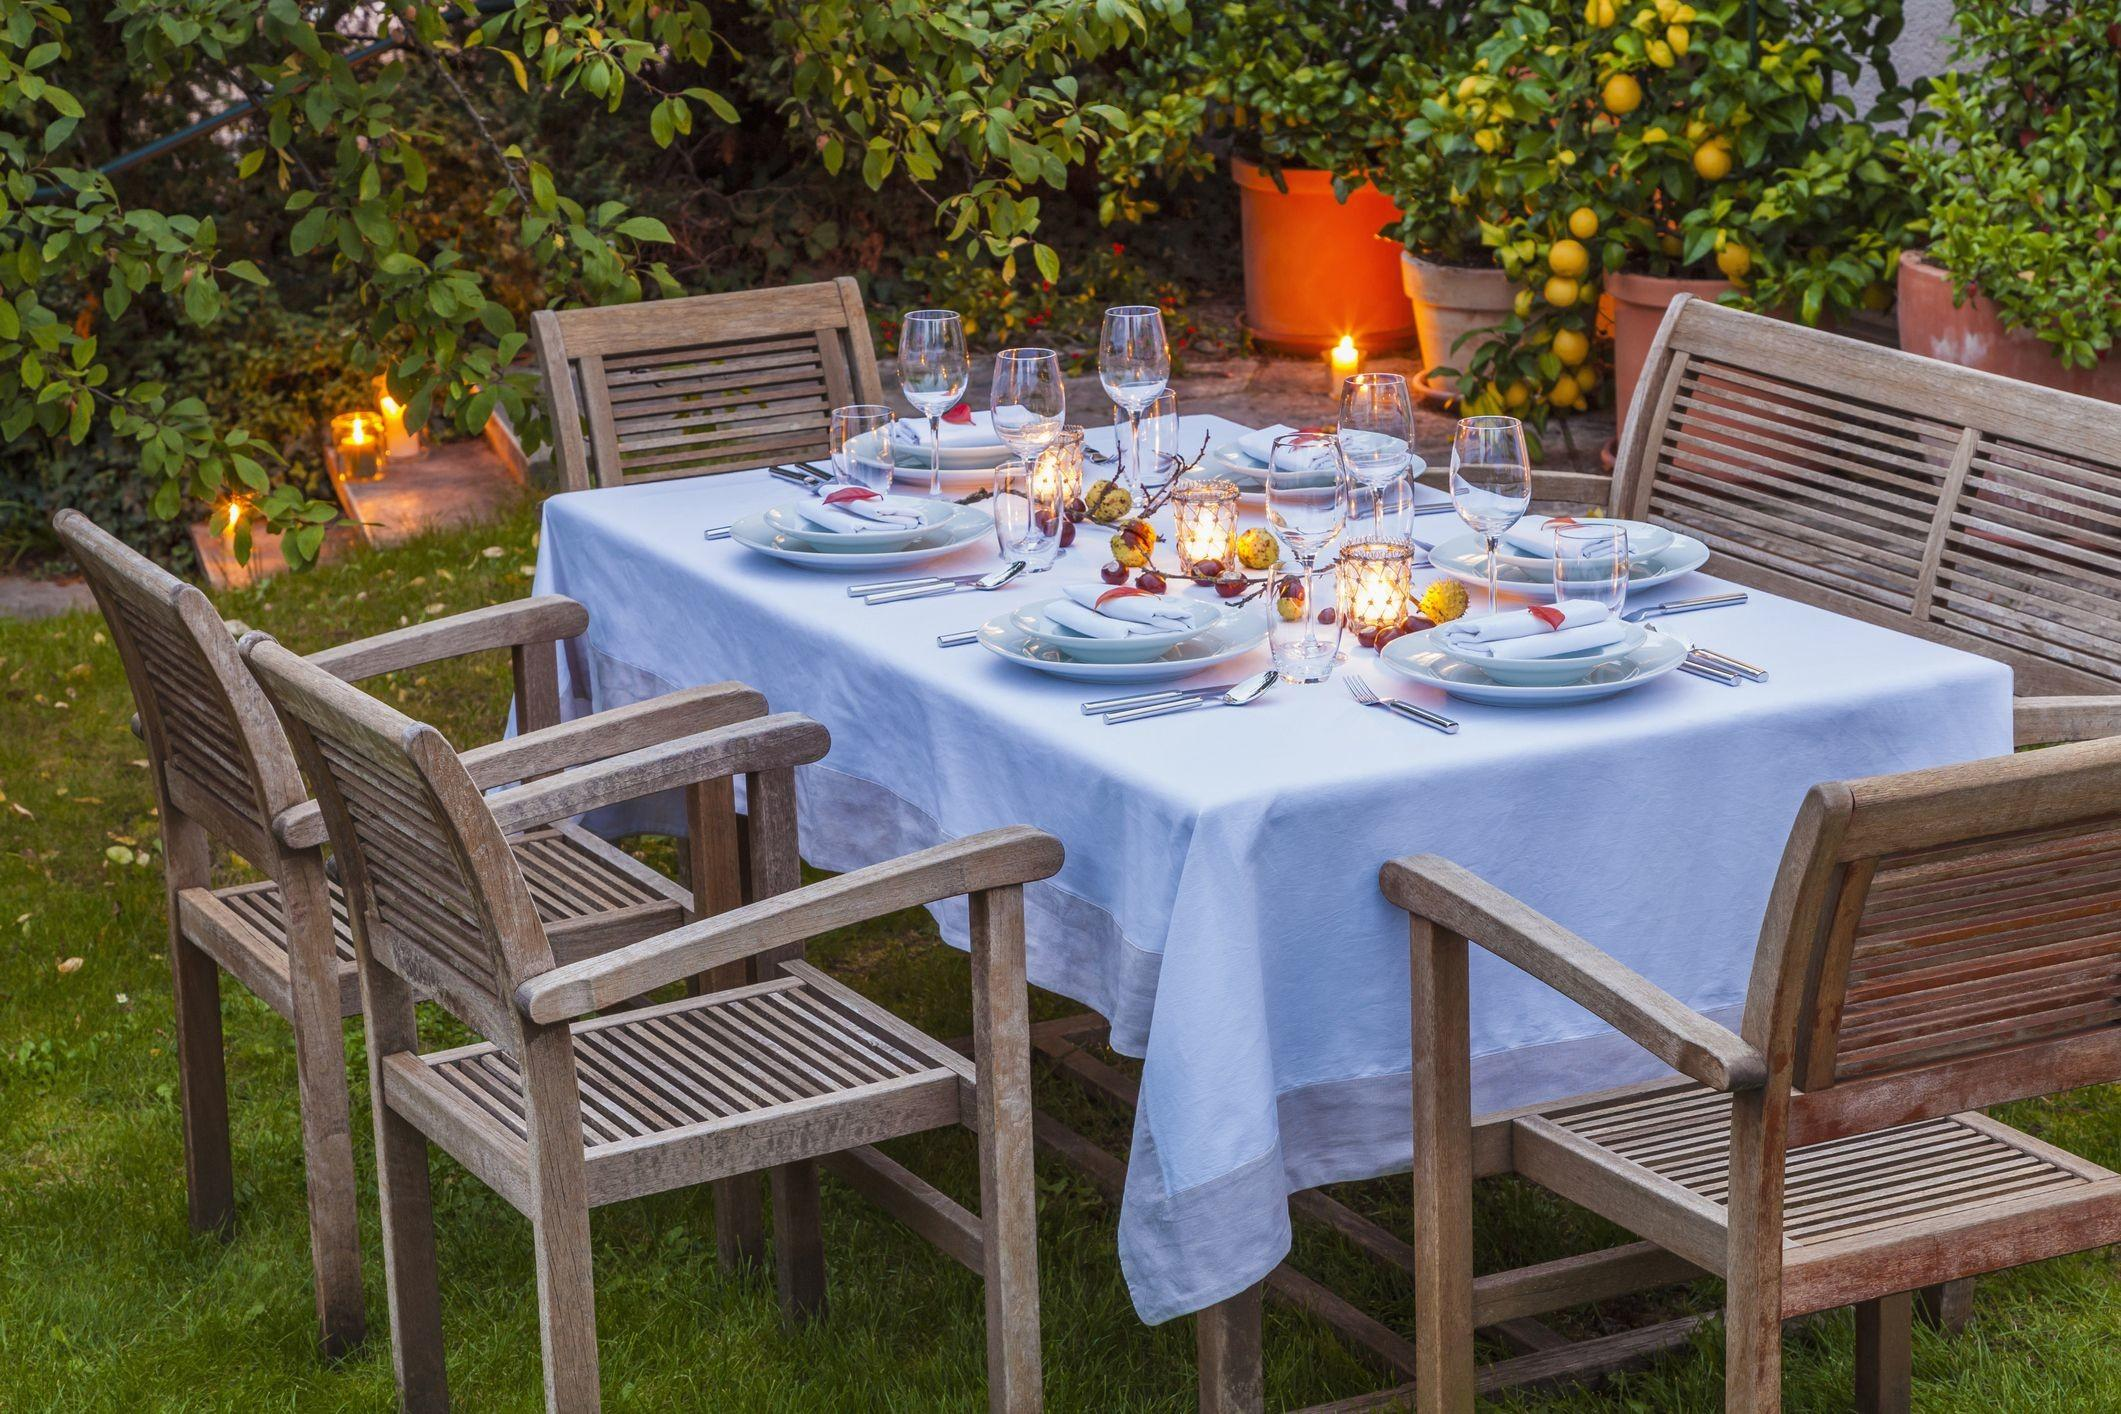 Pretty Practical Outdoor Tablecloths